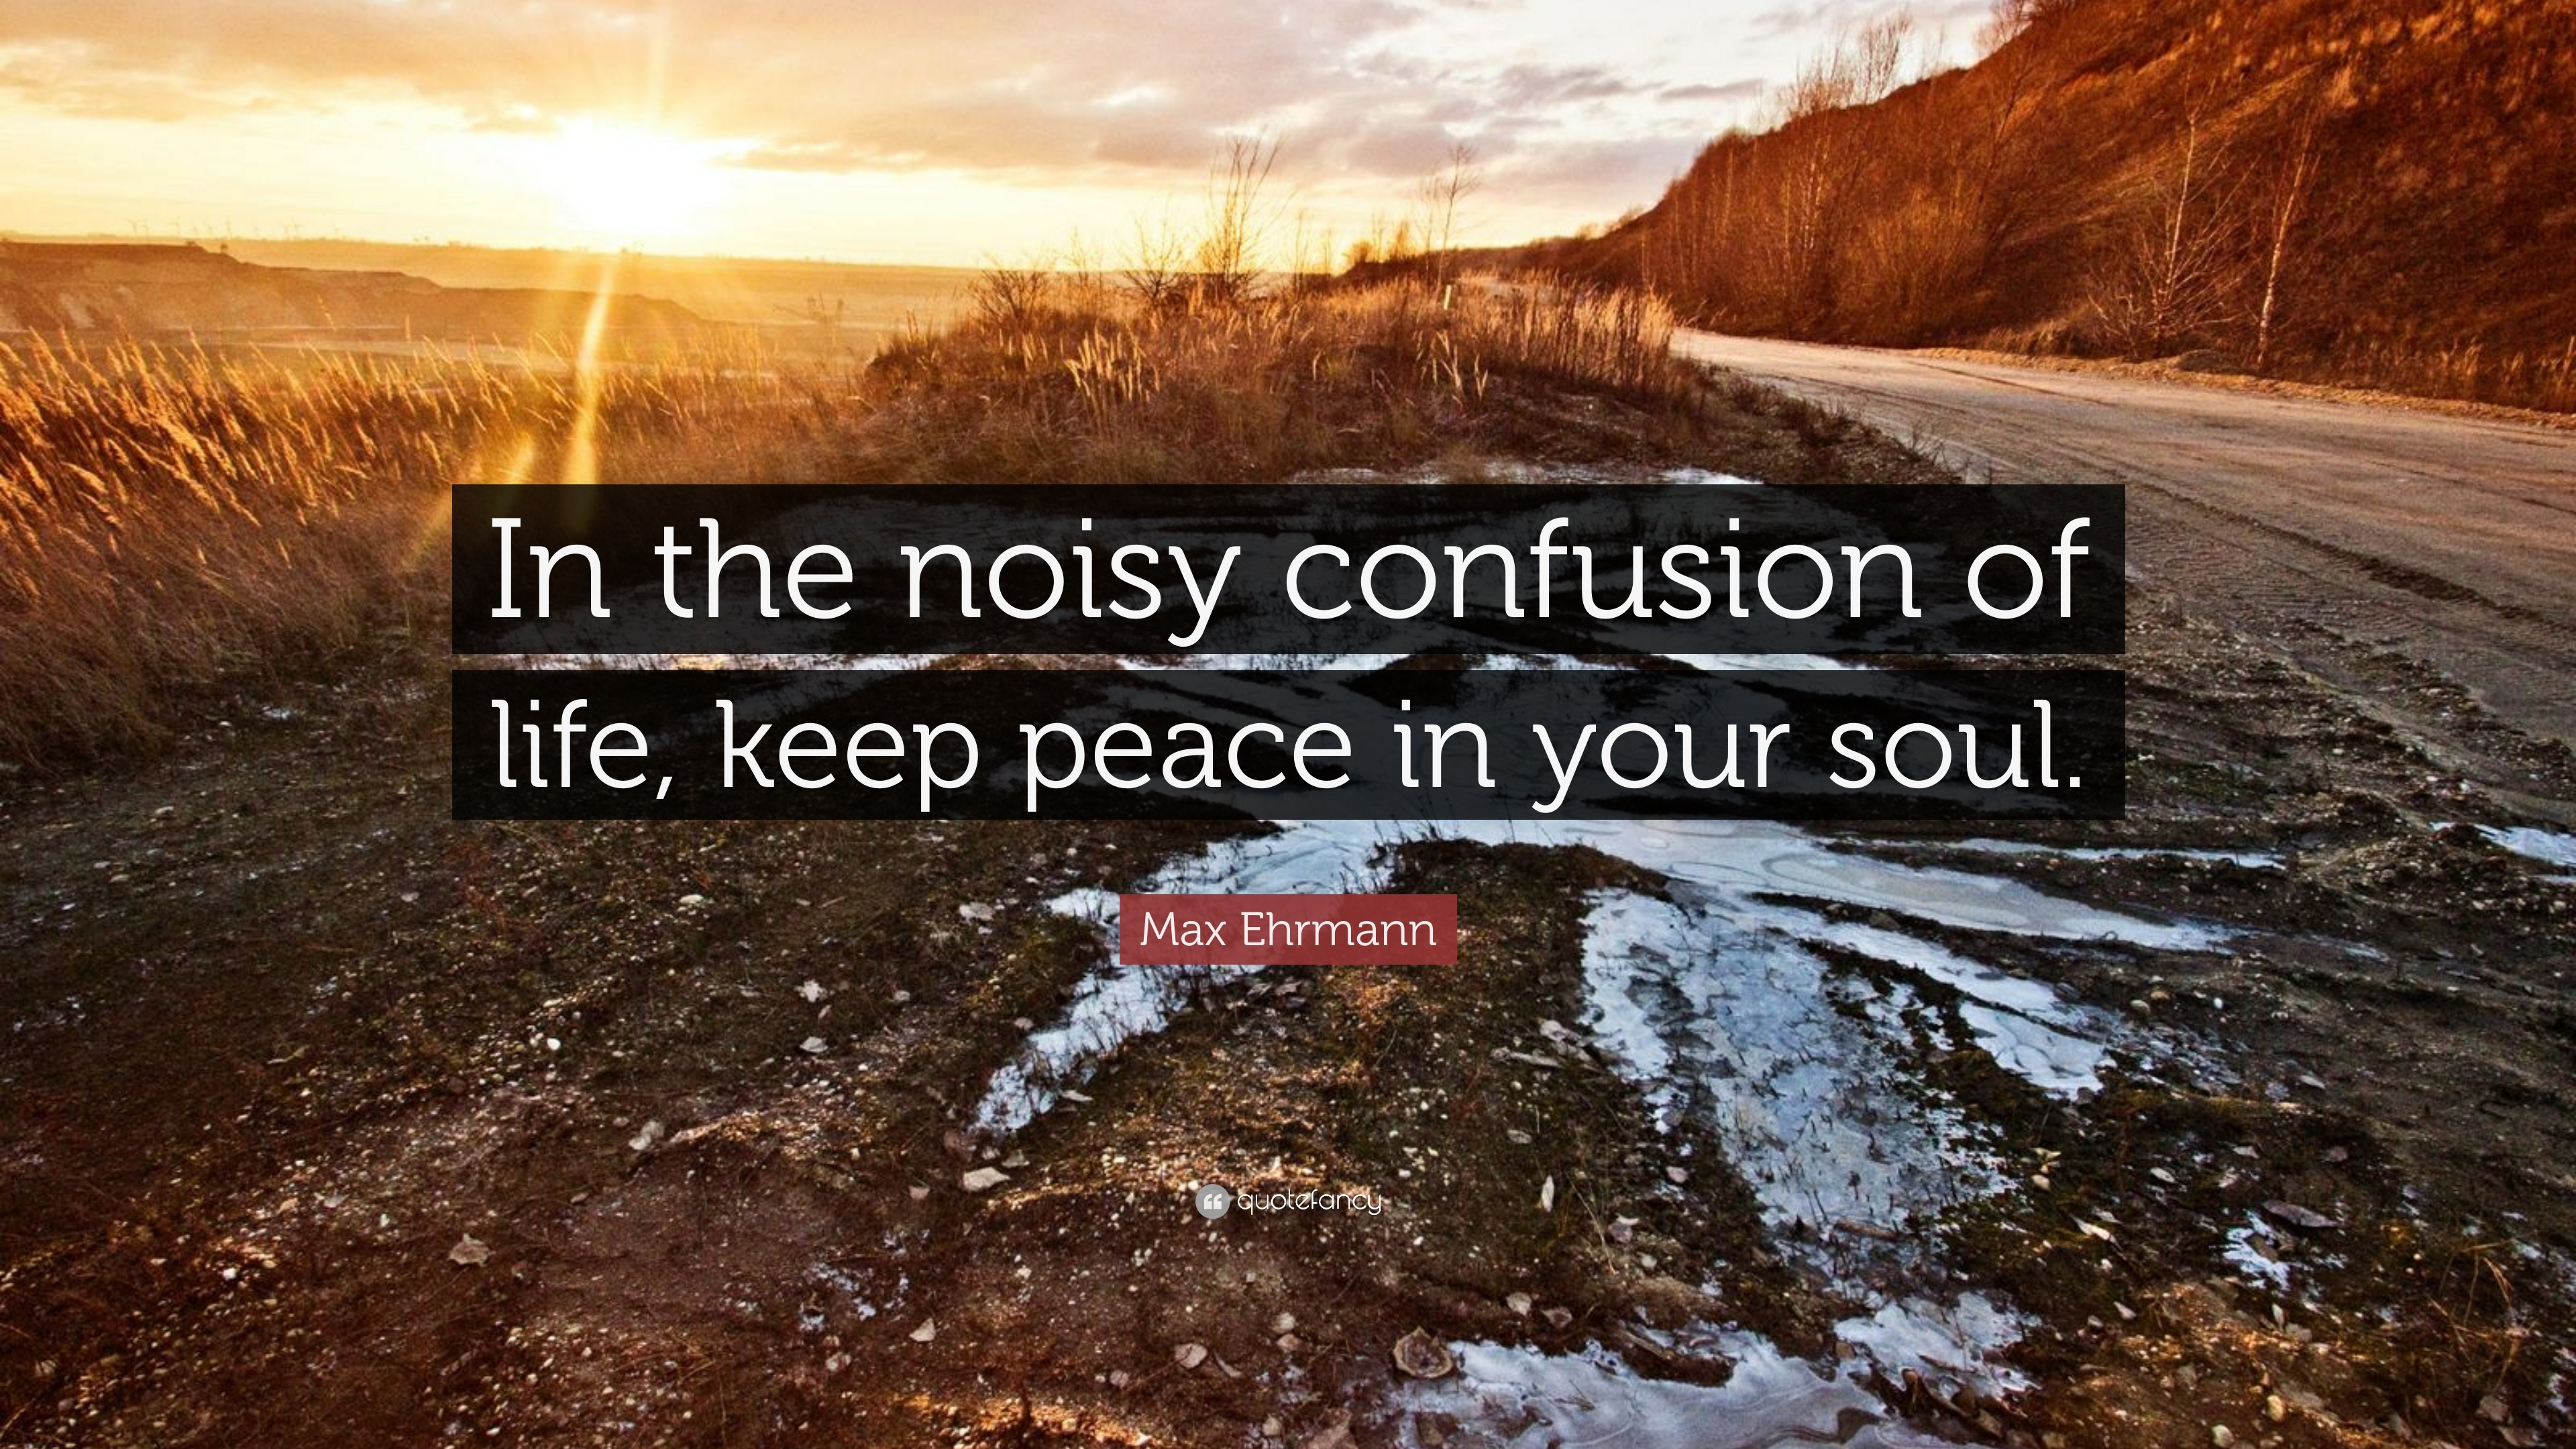 Max Ehrmann Quote In The Noisy Confusion Of Life Keep Peace In